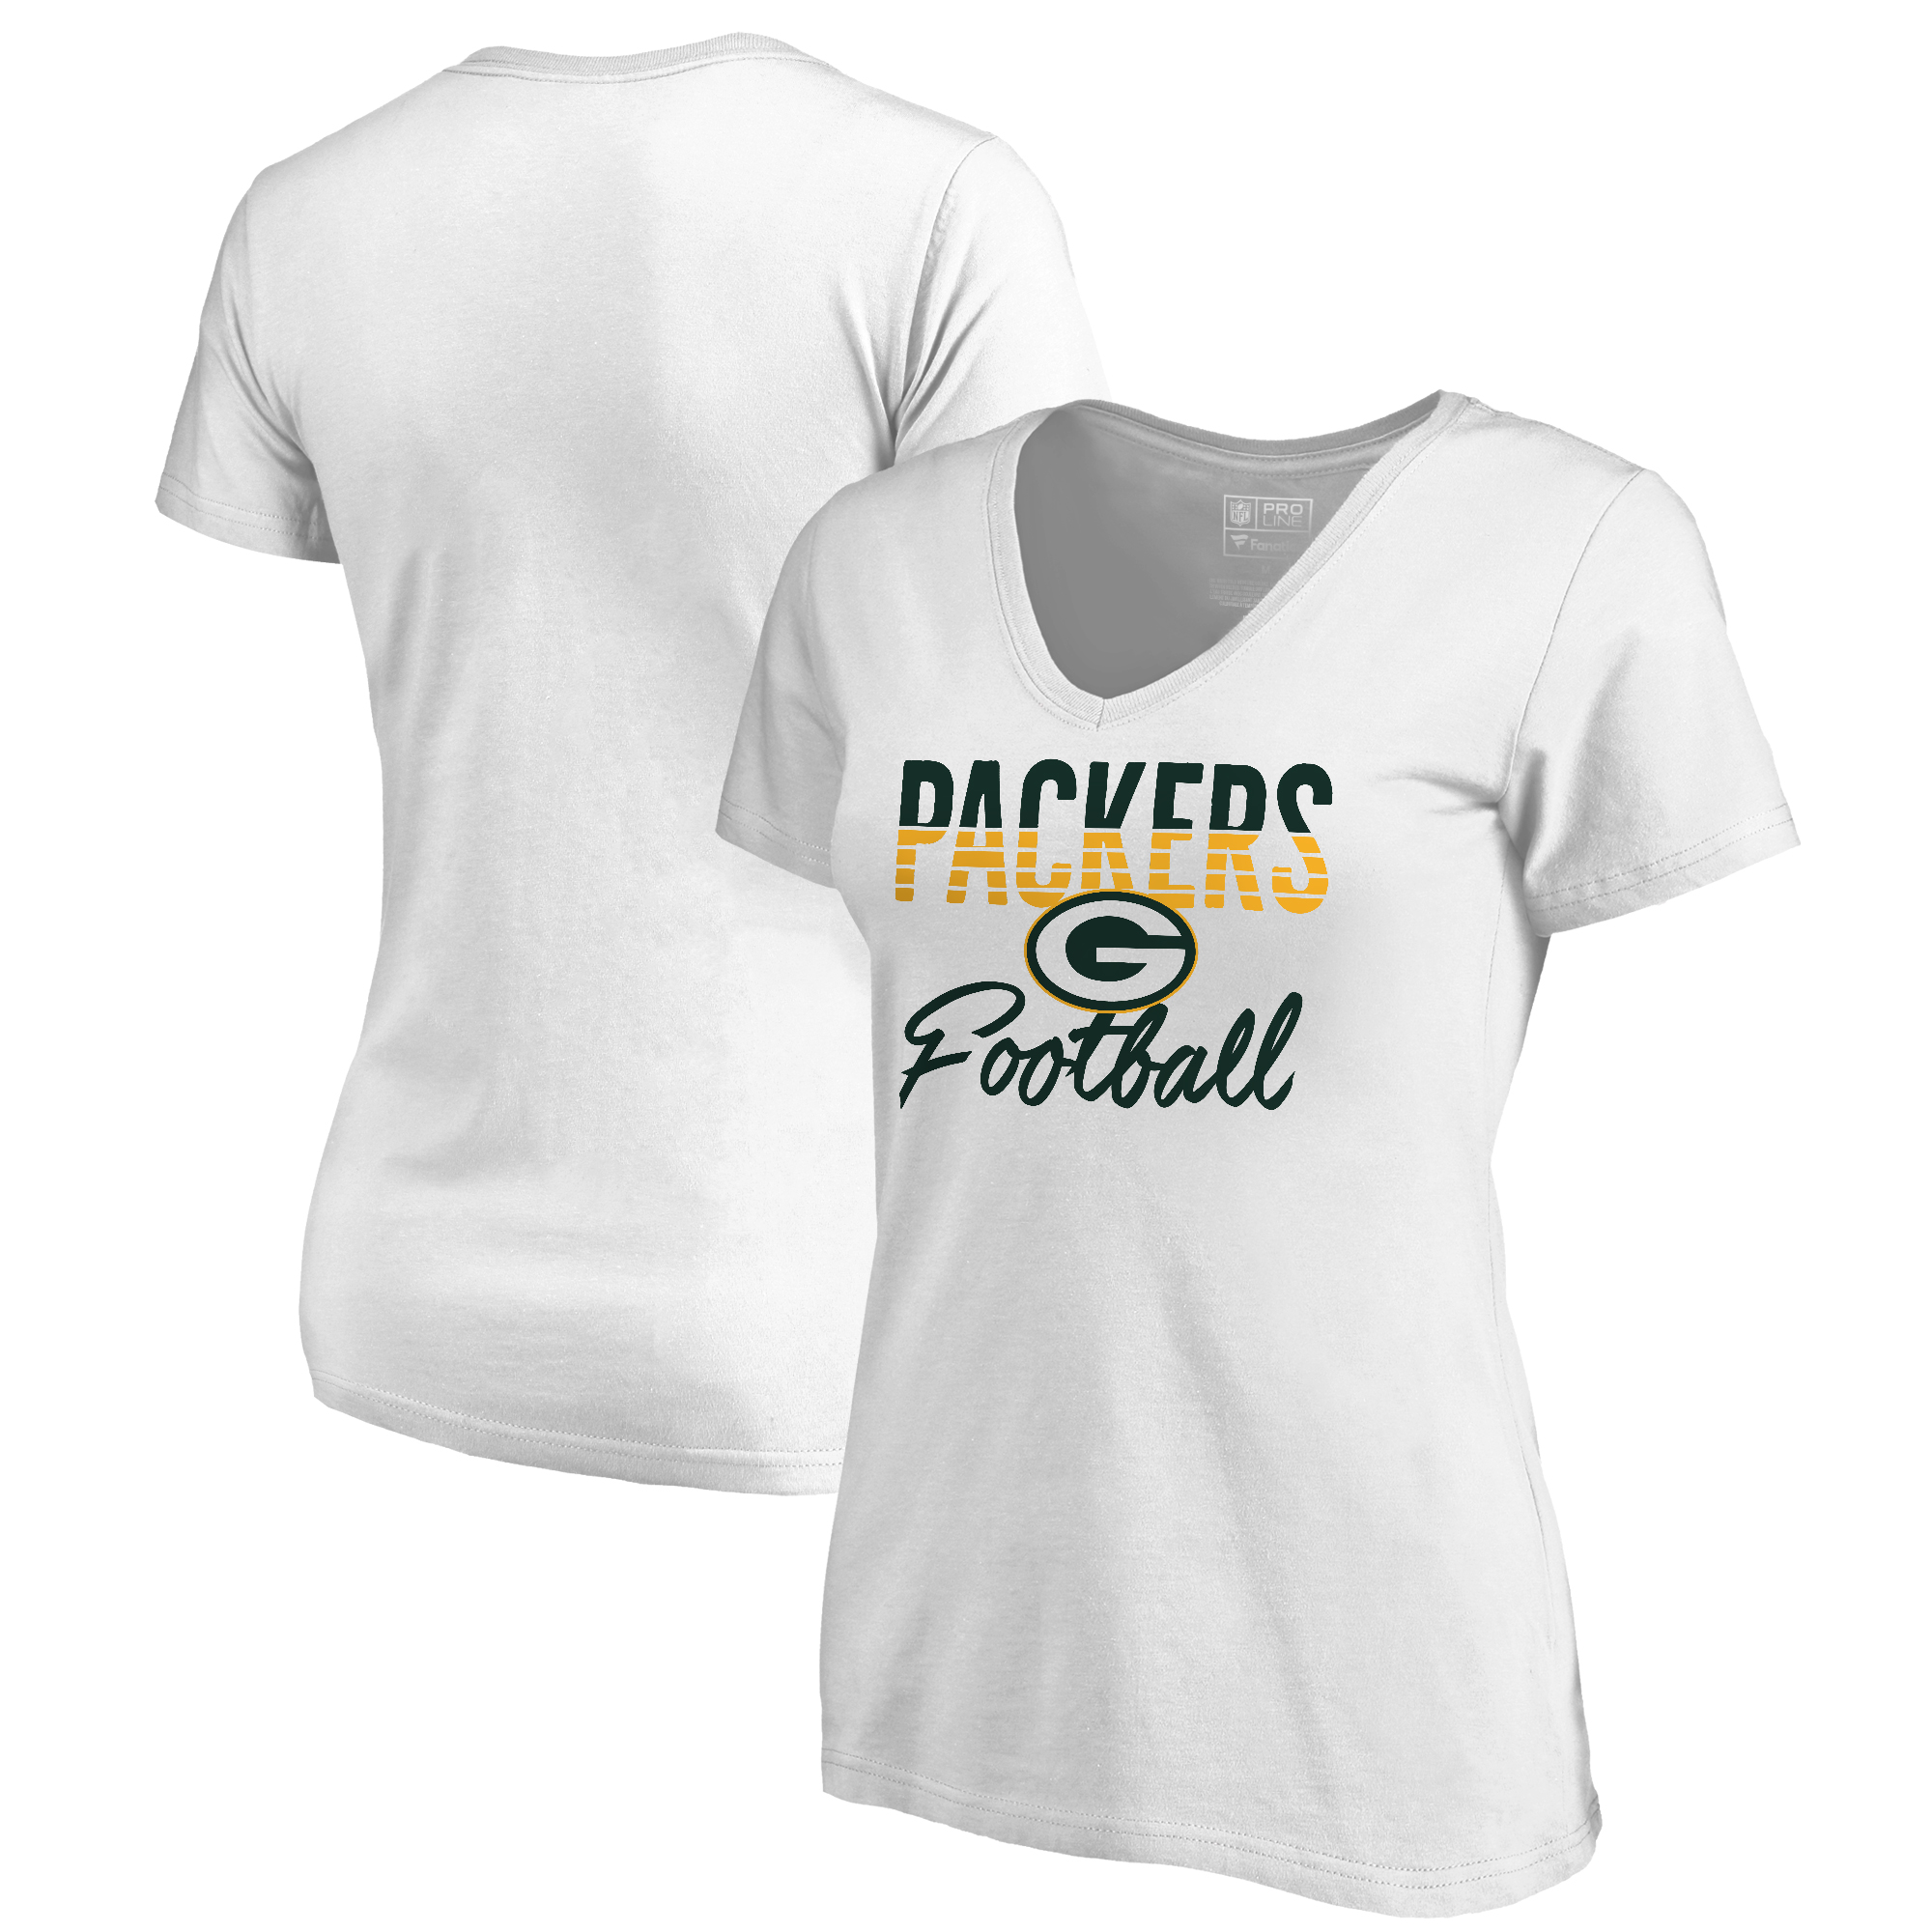 Green Bay Packers NFL Pro Line by Fanatics Branded Women's Free Line Plus Size V-Neck T-Shirt - White